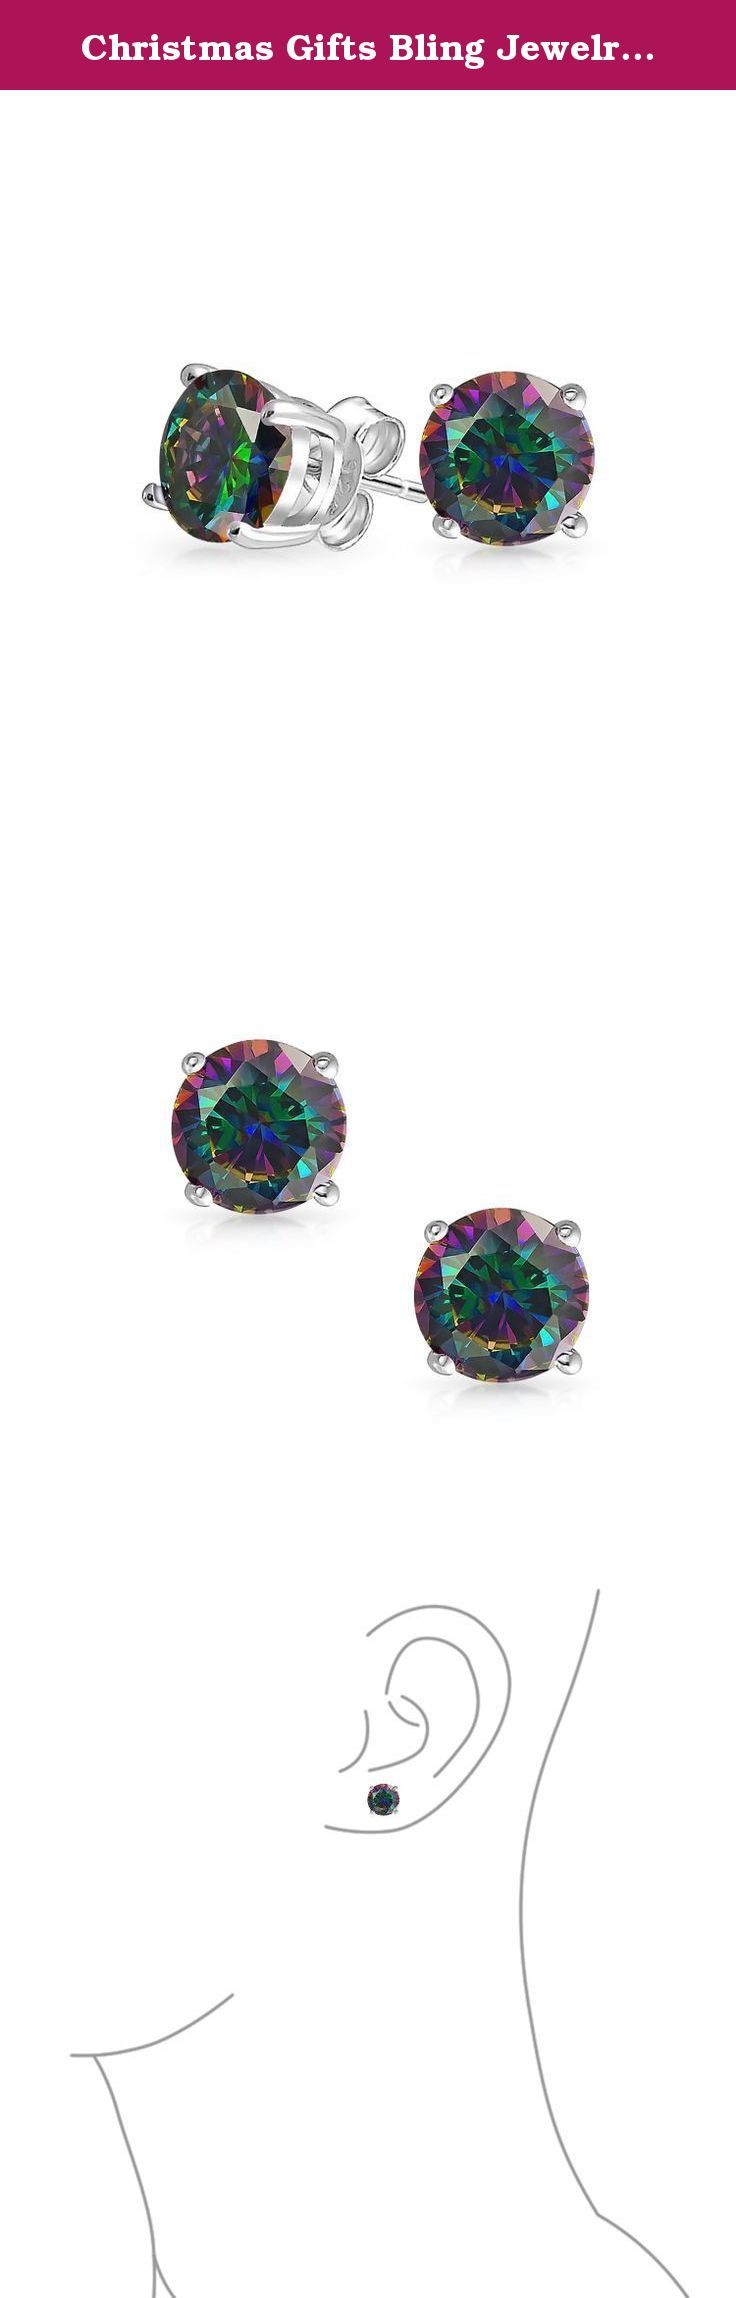 Christmas Gifts Bling Jewelry 925 Silver Rainbow CZ Stud Earrings 6mm. Bring in a hint of sparkle with our rainbow color stud earrings. These stud earrings are made of 925 sterling silver with a round cut Simulated Rainbow Topaz color gemstone. These gorgeous stud earrings make fantastic gifts for any occasion. For pierced ears only.